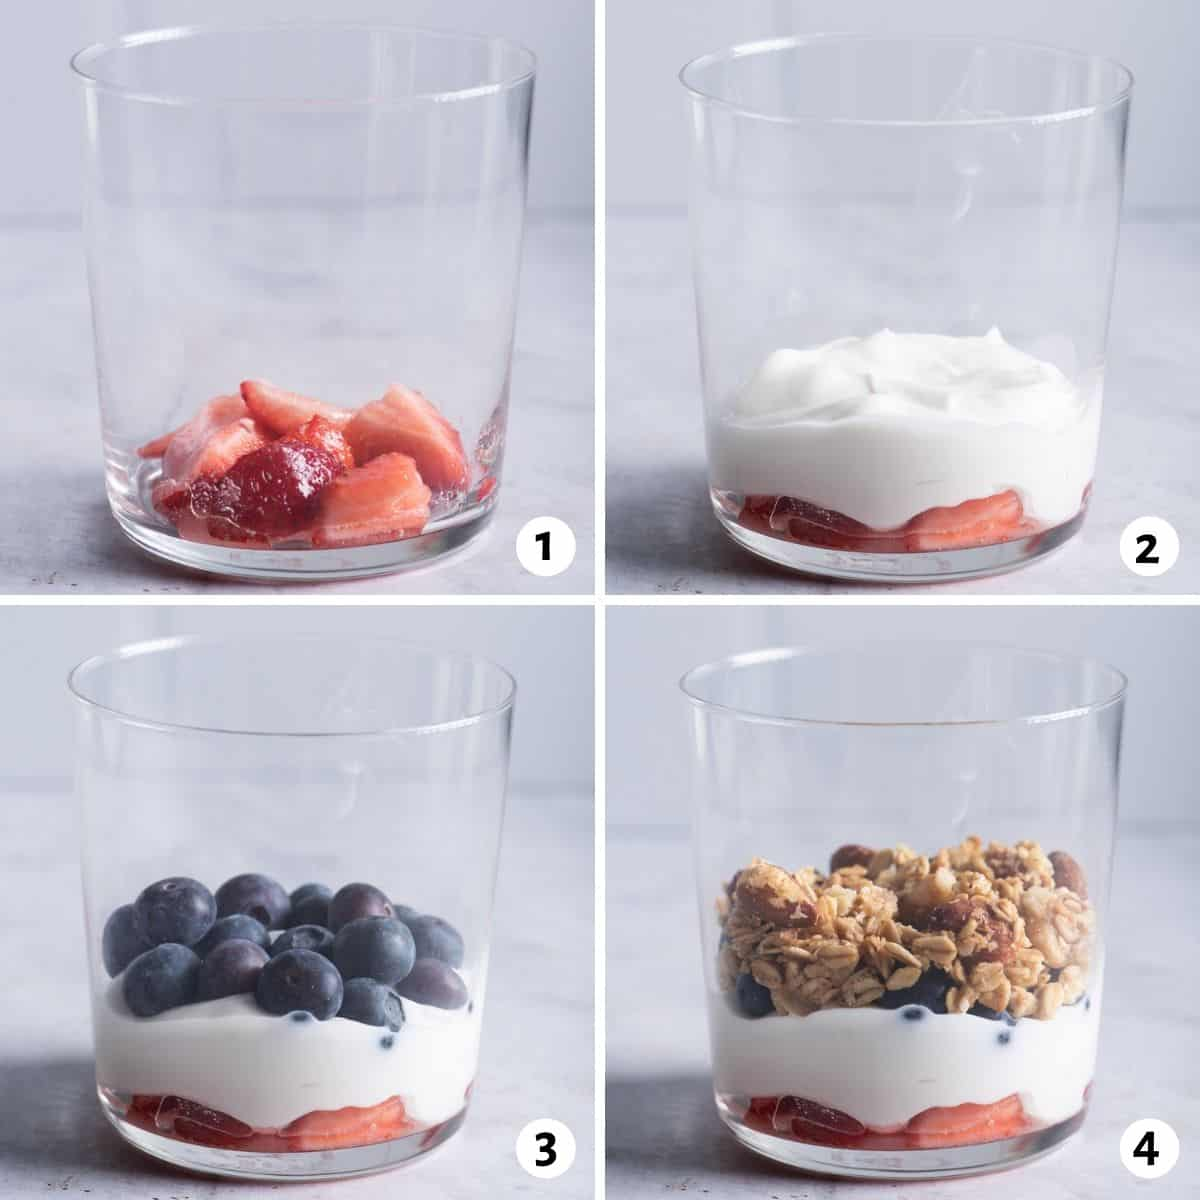 4 image collage to show how to assemble the parfait